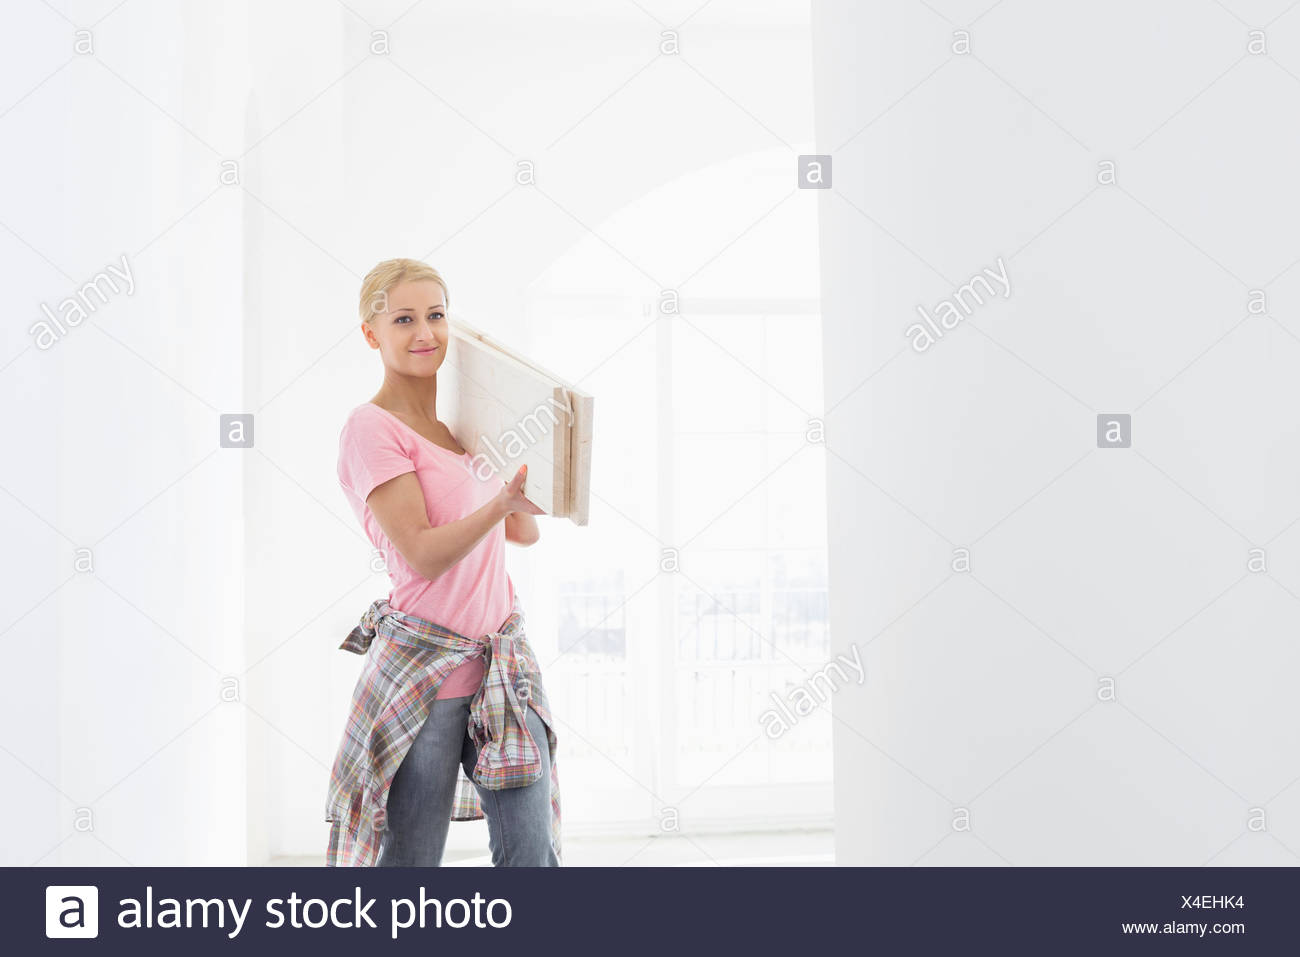 Woman carrying wooden planks on shoulder - Stock Image